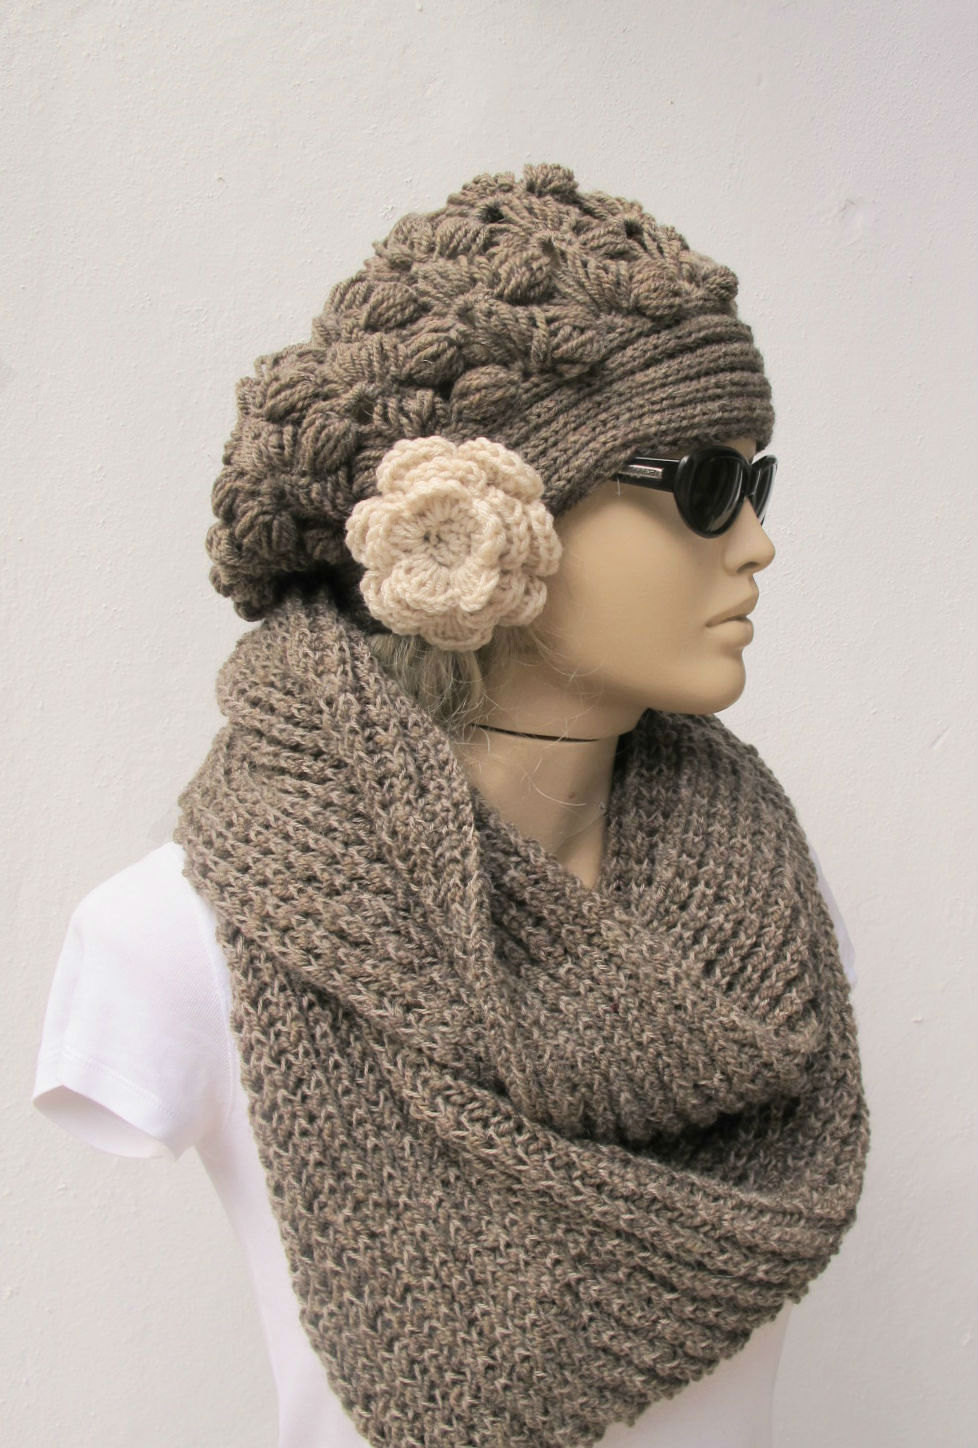 Beautiful Free Crochet Hat and Scarf Set Patterns Crochet Hat and Scarf Patterns Free Of Amazing 47 Pics Crochet Hat and Scarf Patterns Free